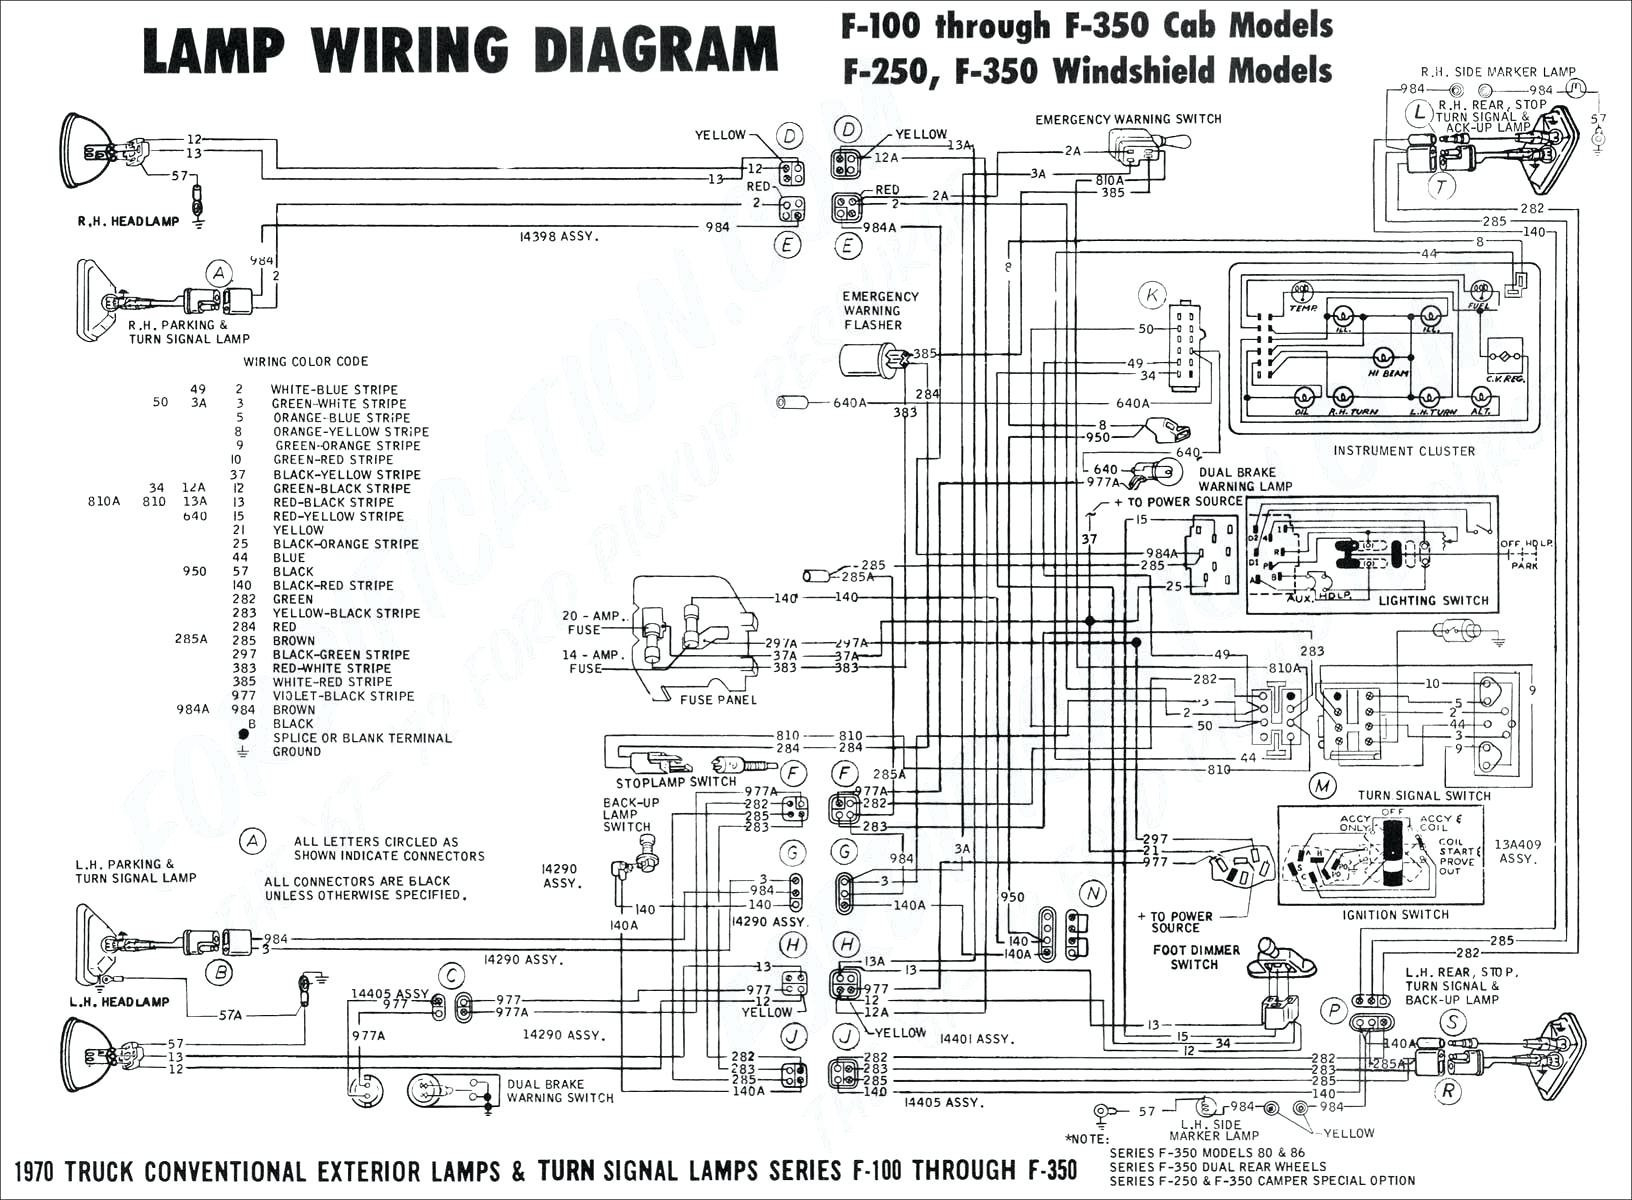 79 ford headlight switch wiring wiring diagrams the79 ford headlight switch wiring wiring diagram schematics 79 ford headlight switch wiring